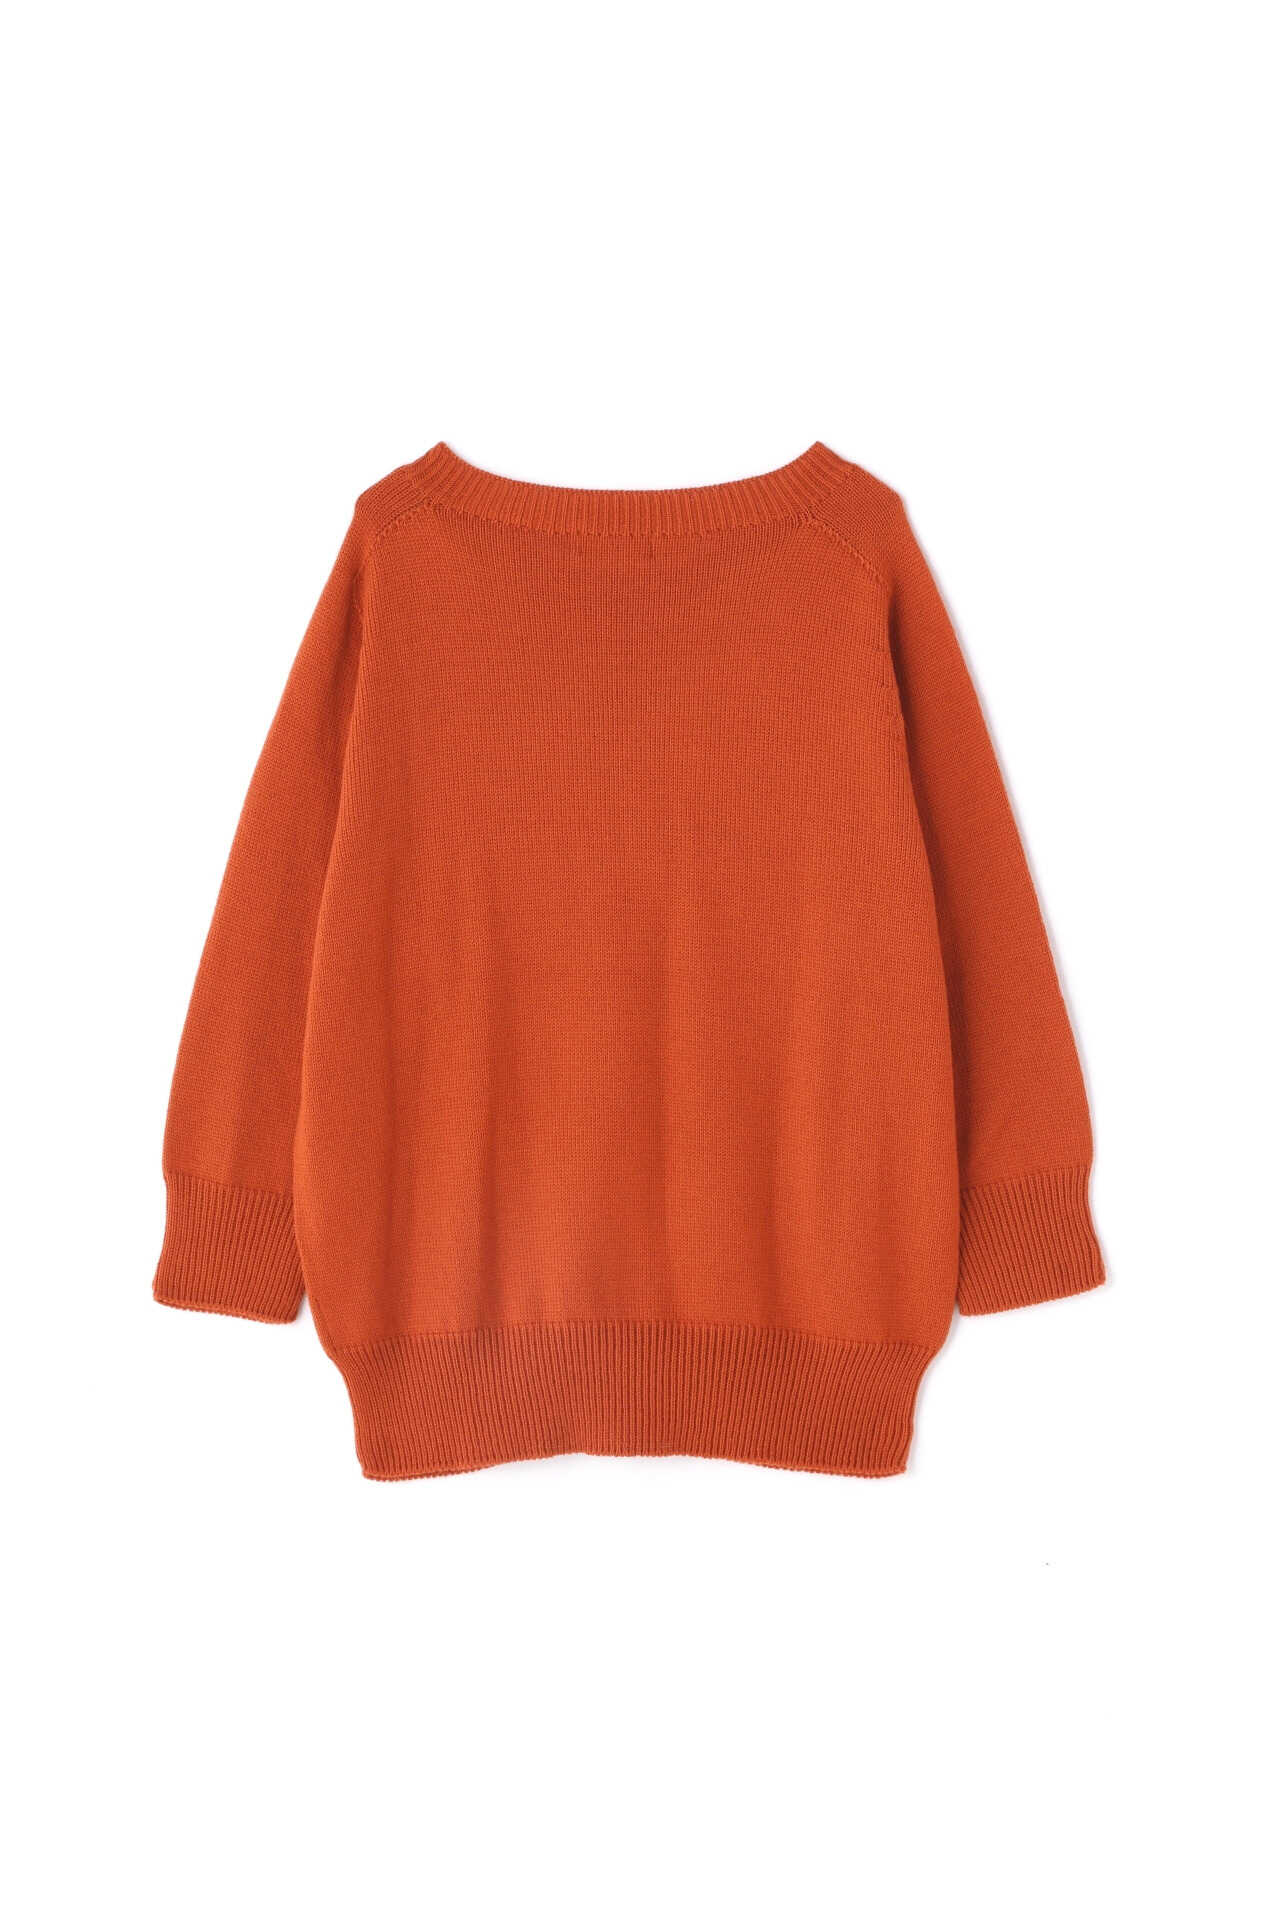 WOOL COTTON JUMPER11